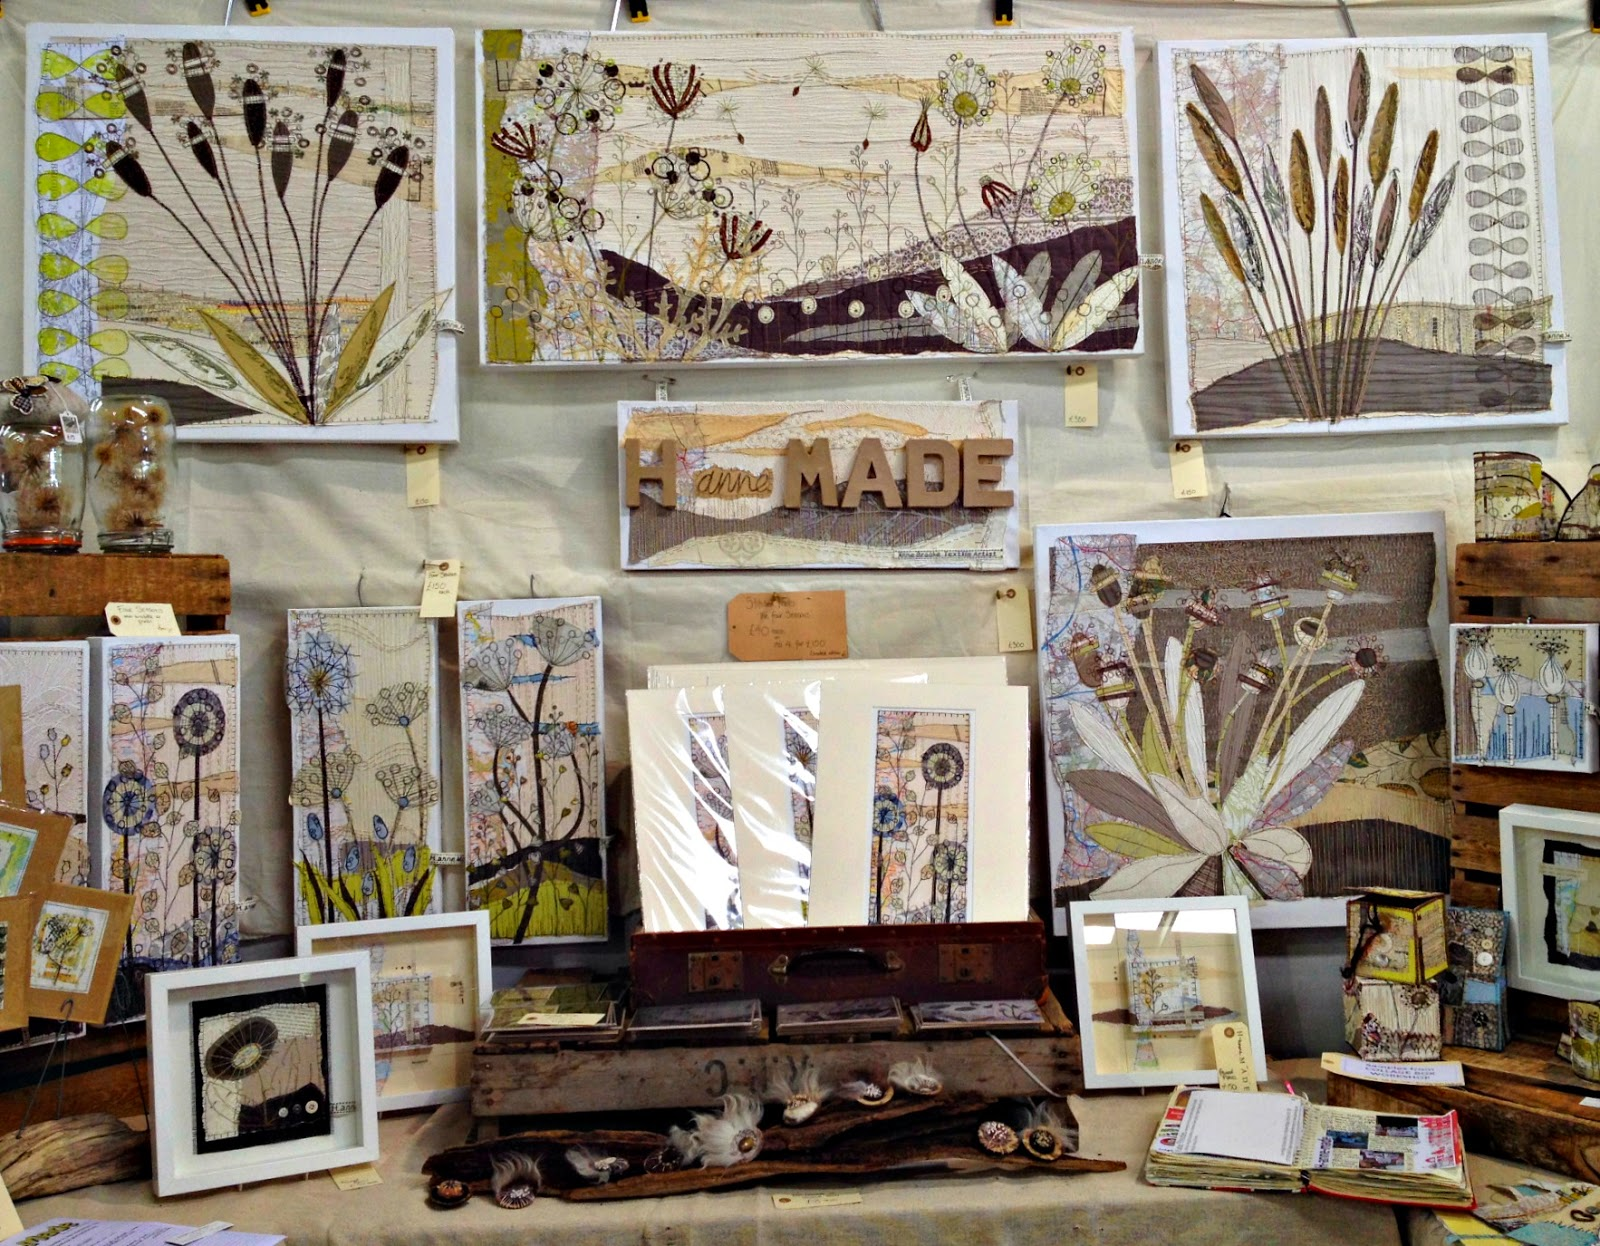 H-anne-MADE textile art stand at woolfest